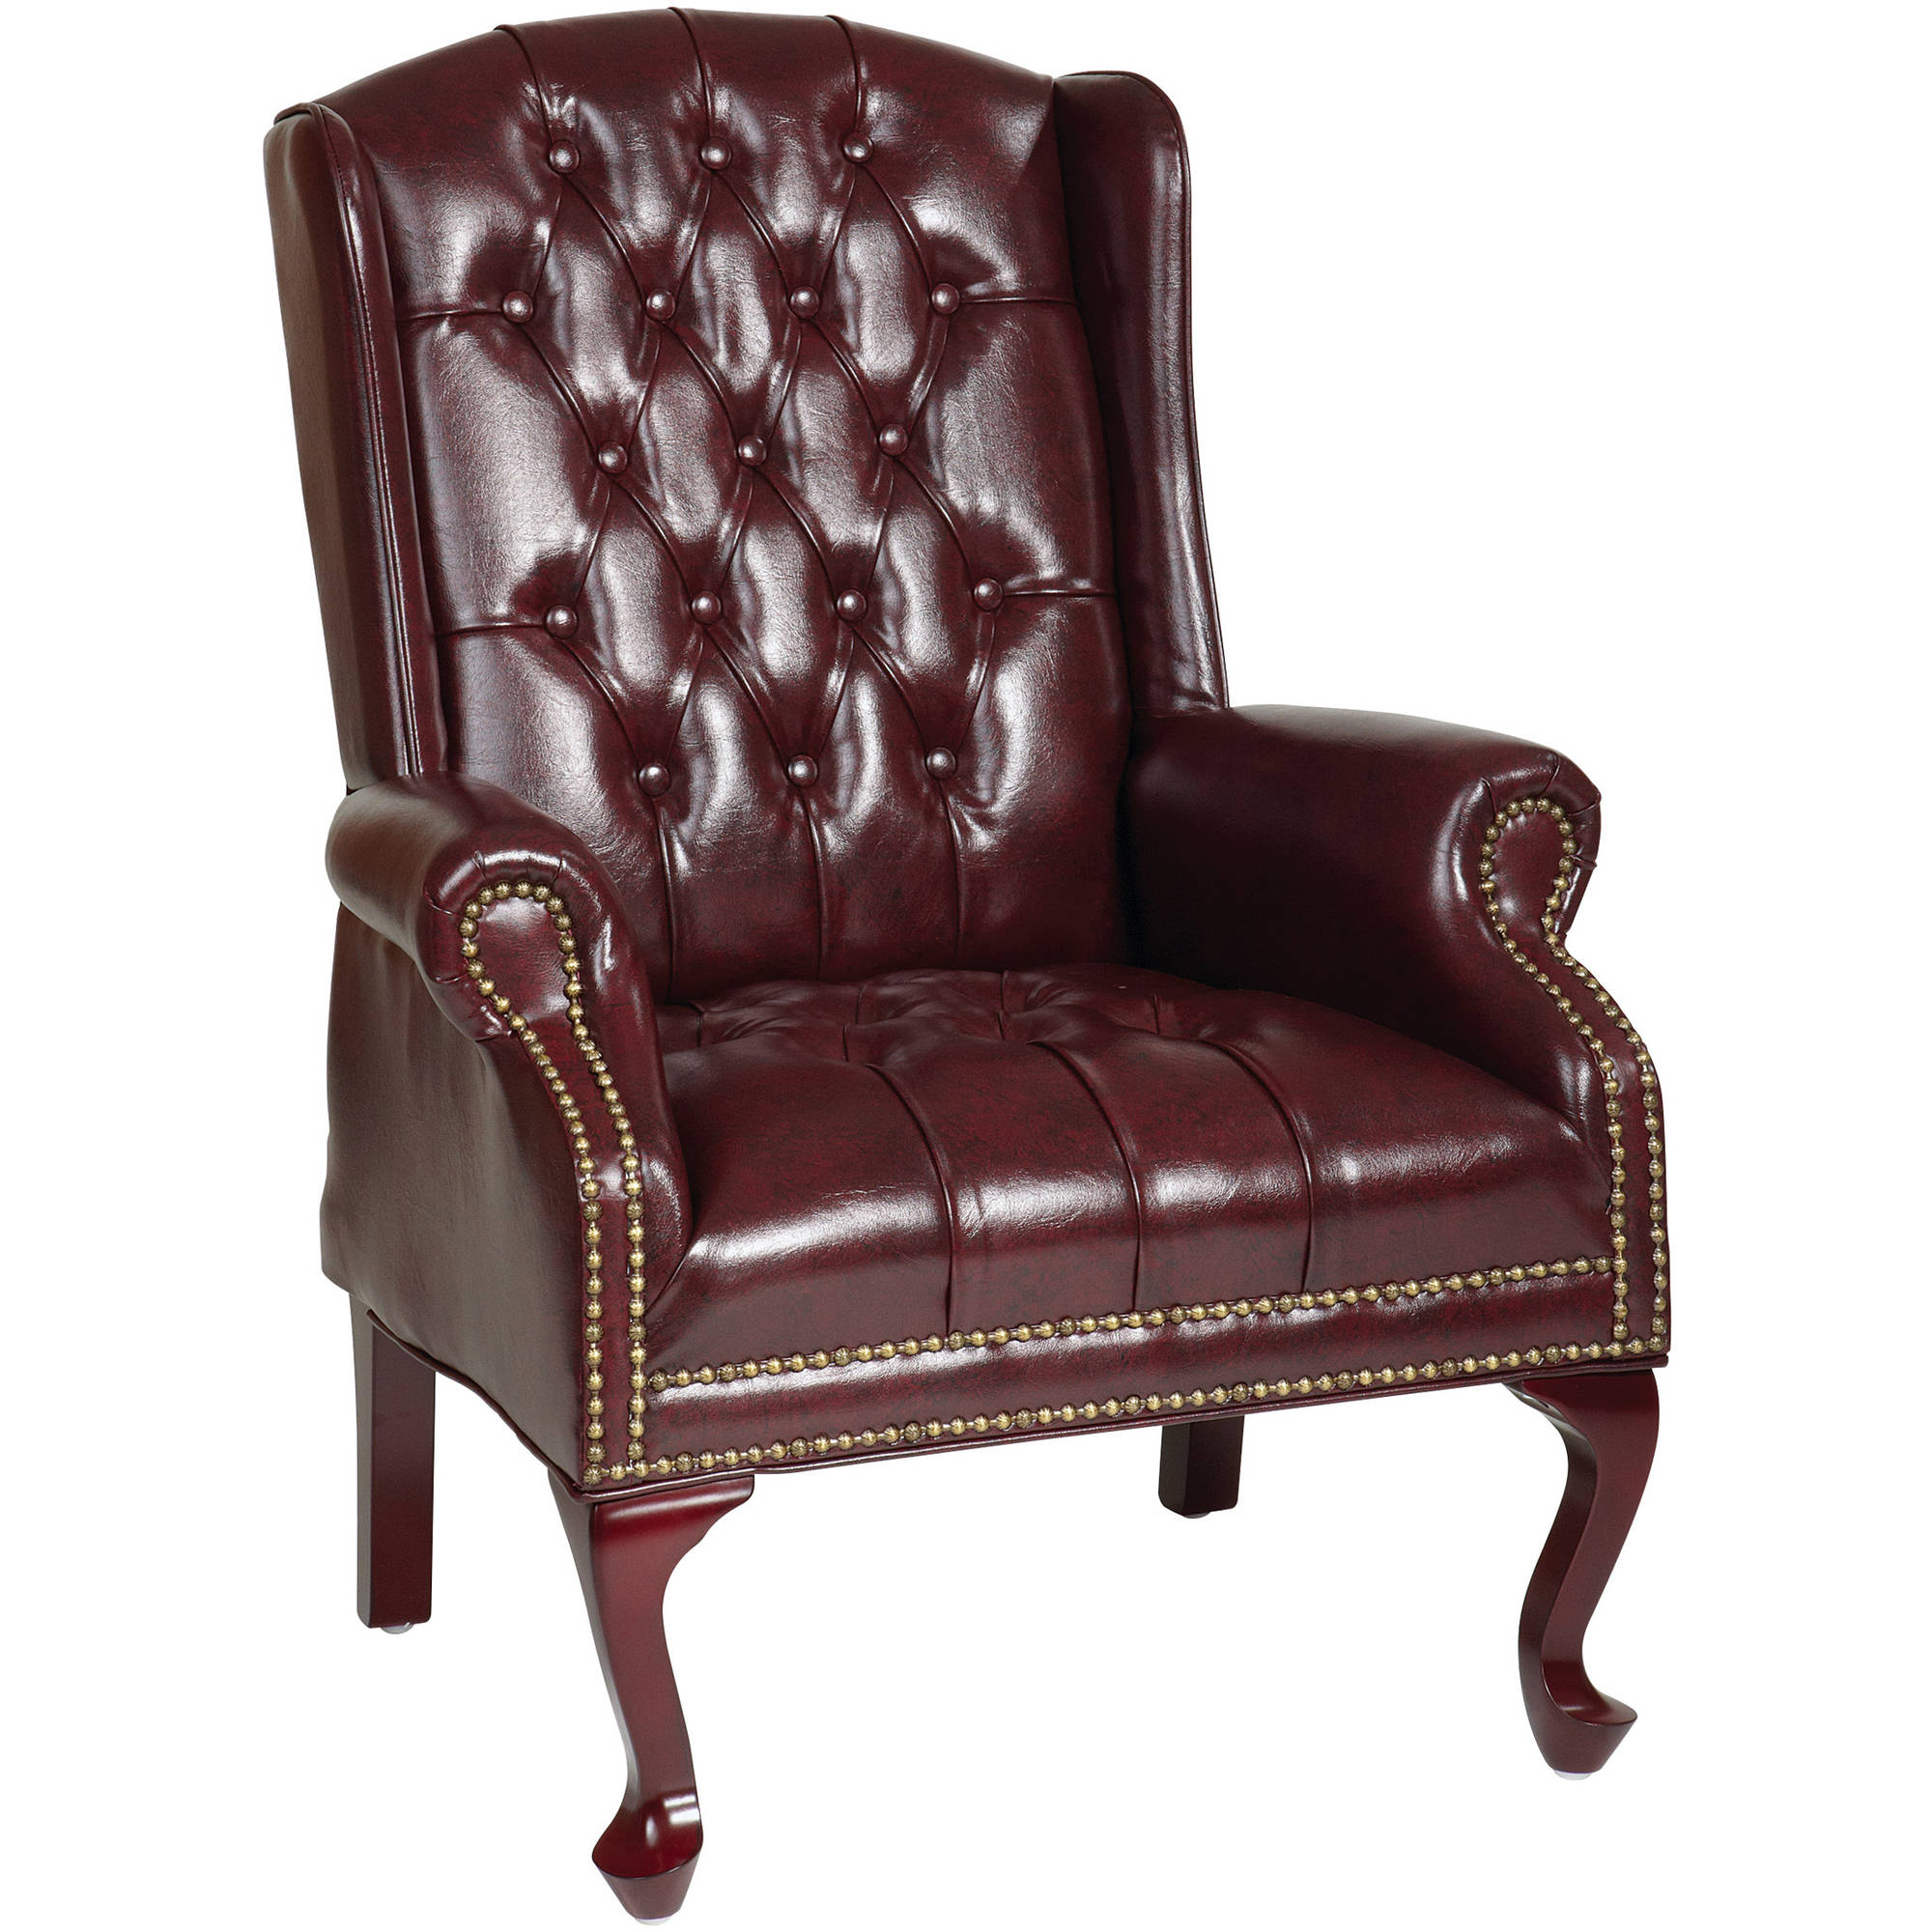 Work Smart Traditional Queen Anne Style Chair, Mahogany